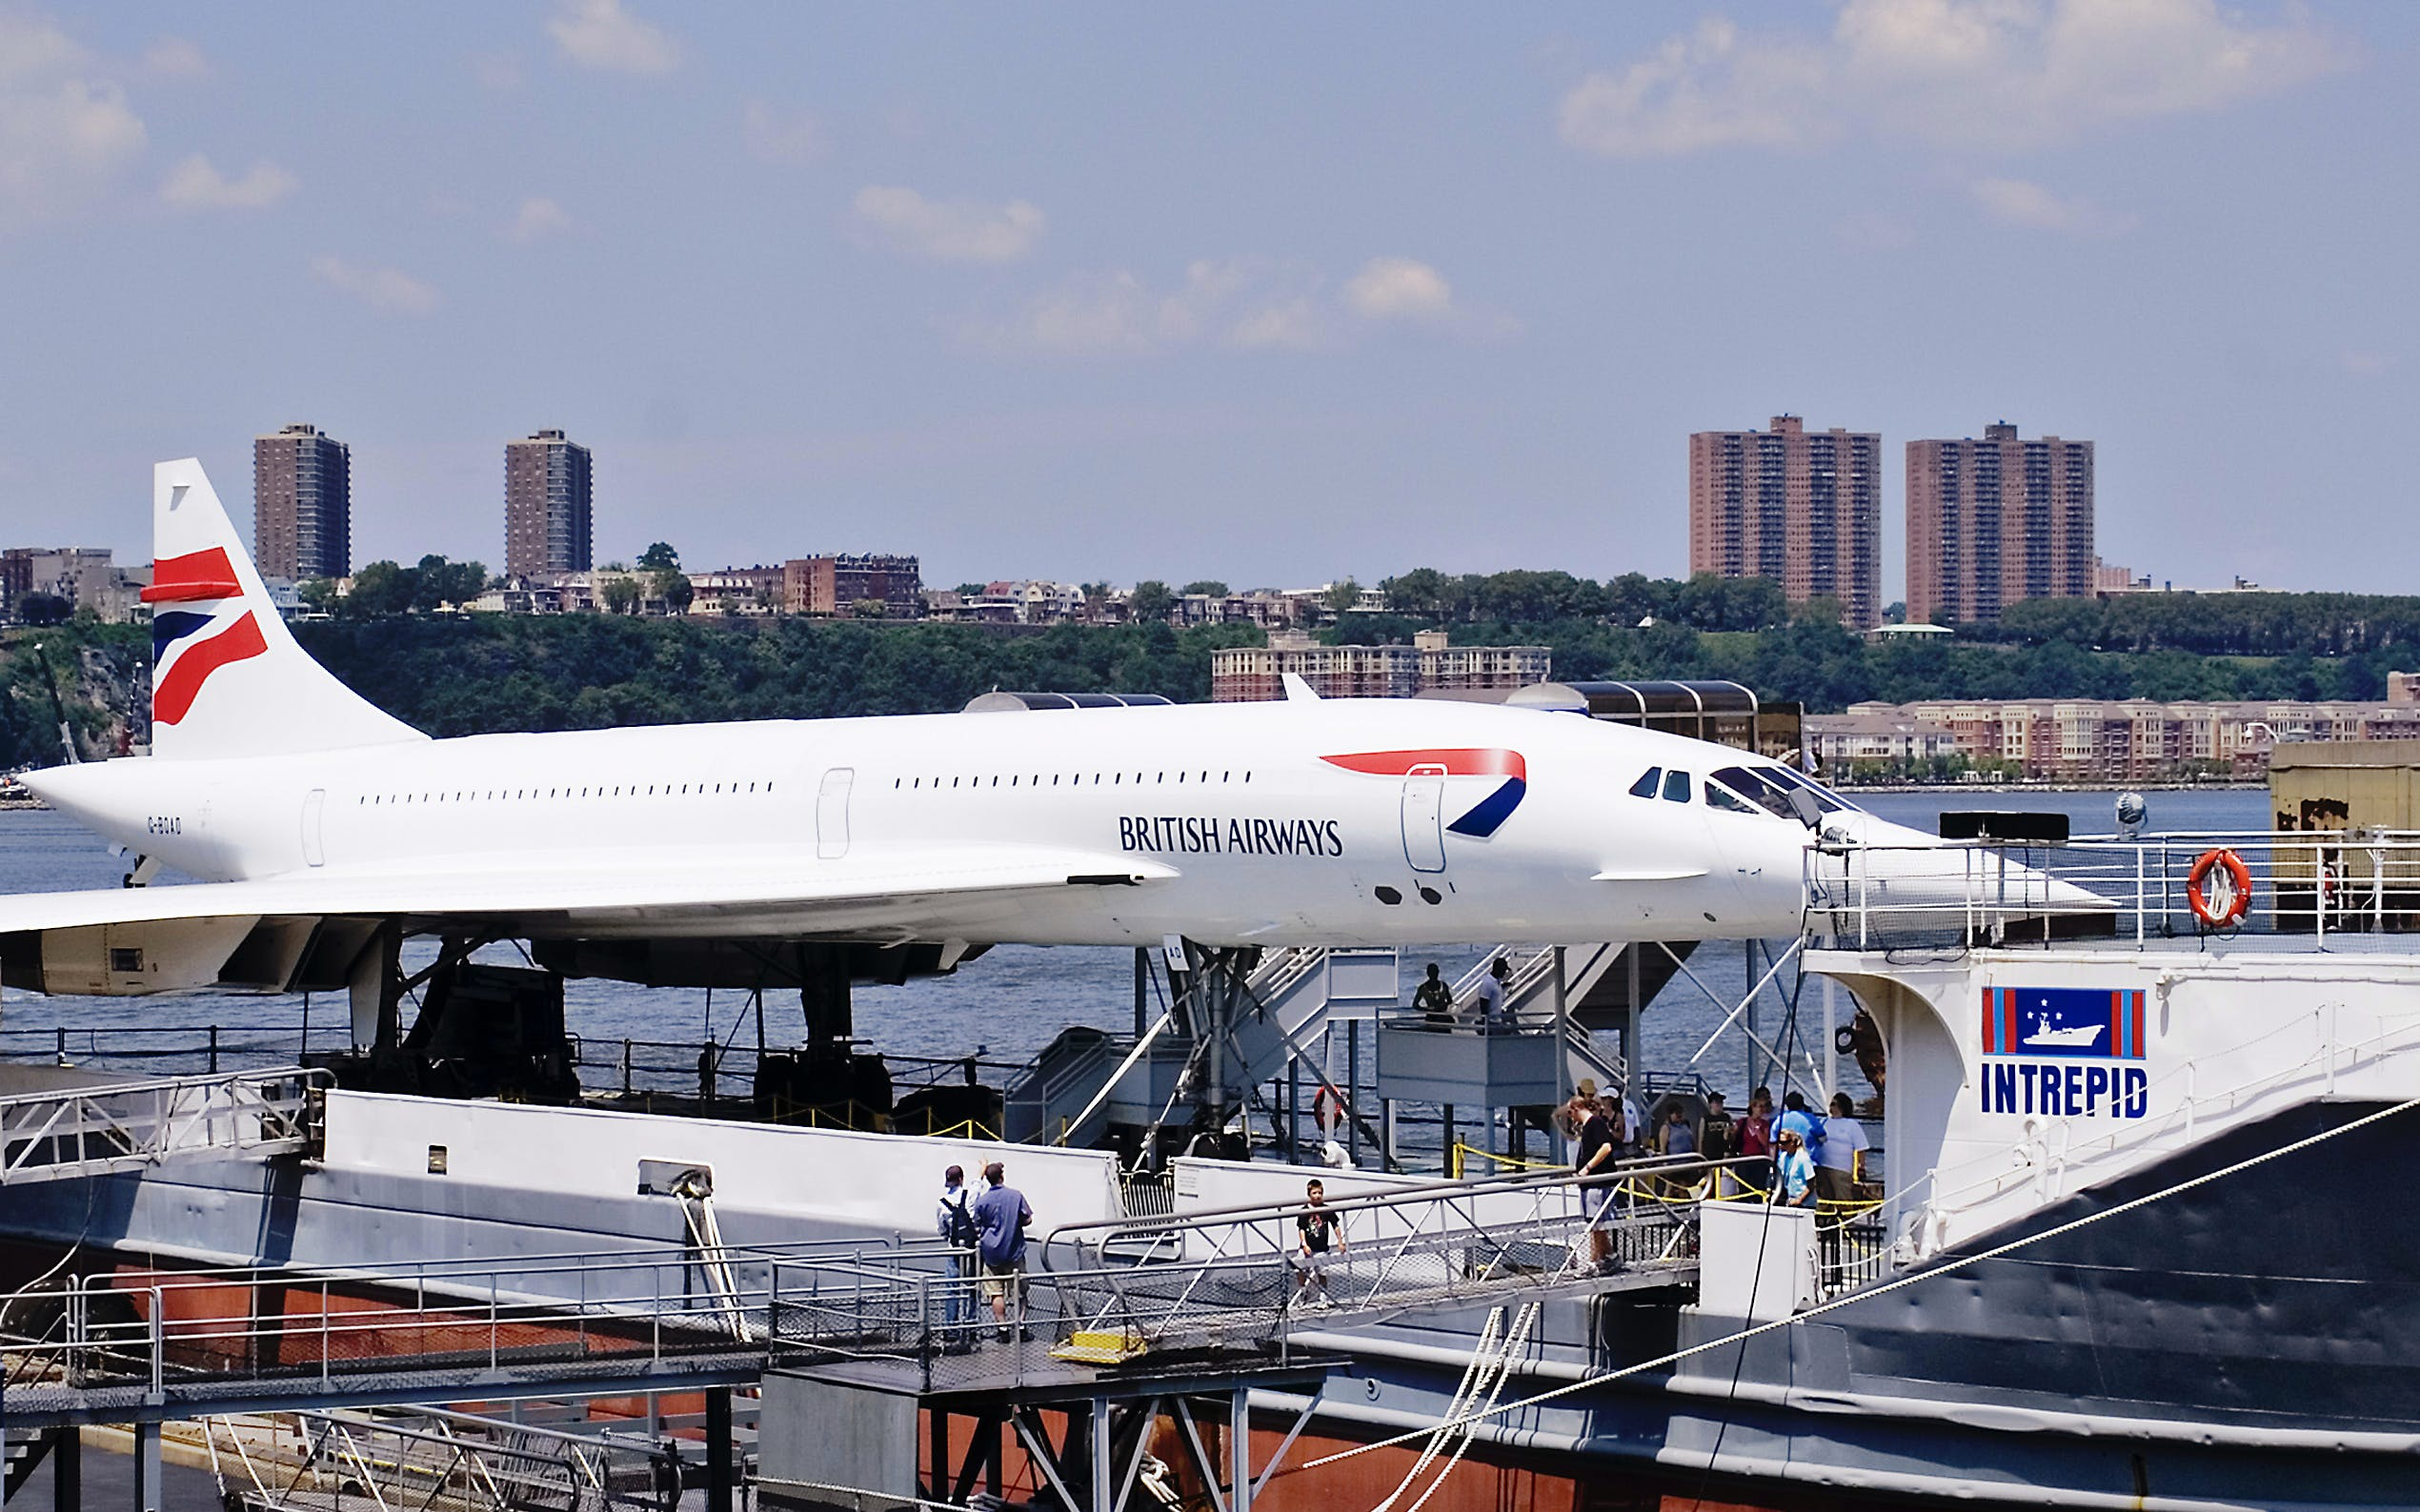 concorde: a supersonic story guided tour + admission tickets to intrepid-2